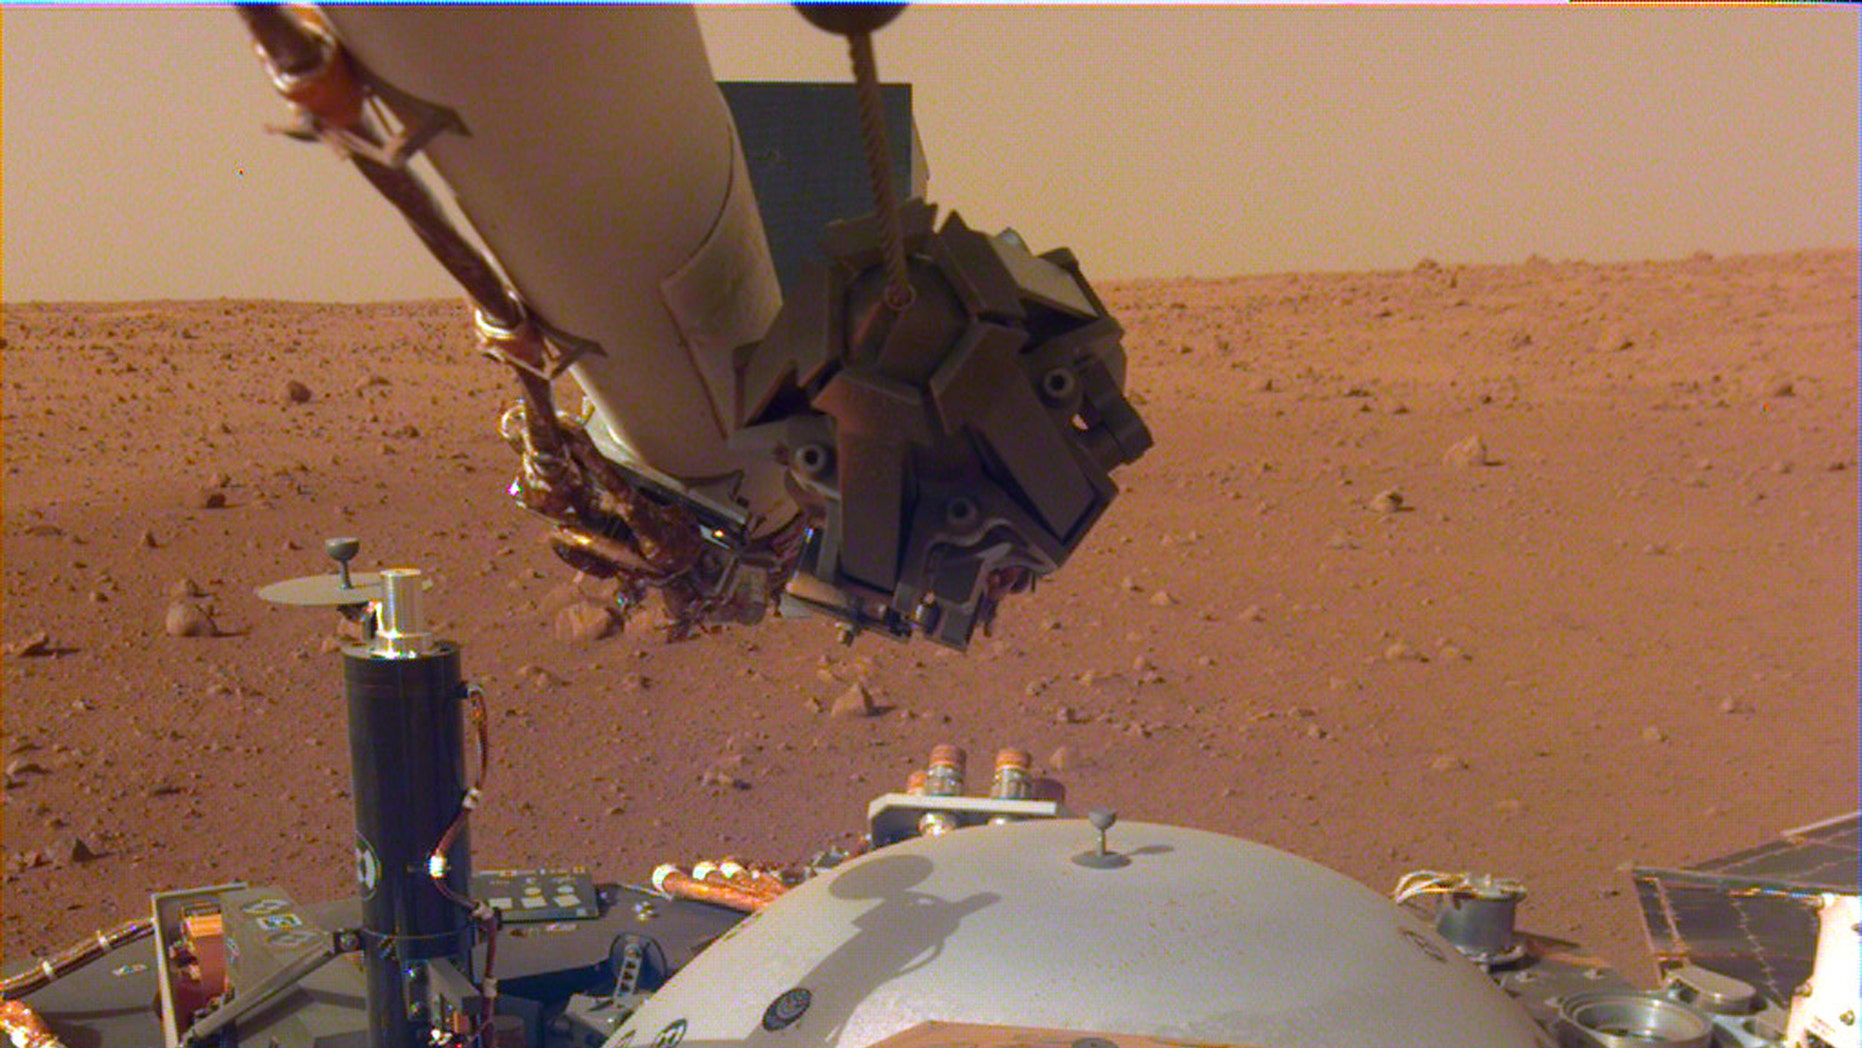 This image from InSight's robotic-arm mounted Instrument Deployment Camera shows the instruments on the spacecraft's deck, with the Martian surface of Elysium Planitia in the background. (Credit: NASA/JPL-Caltech)